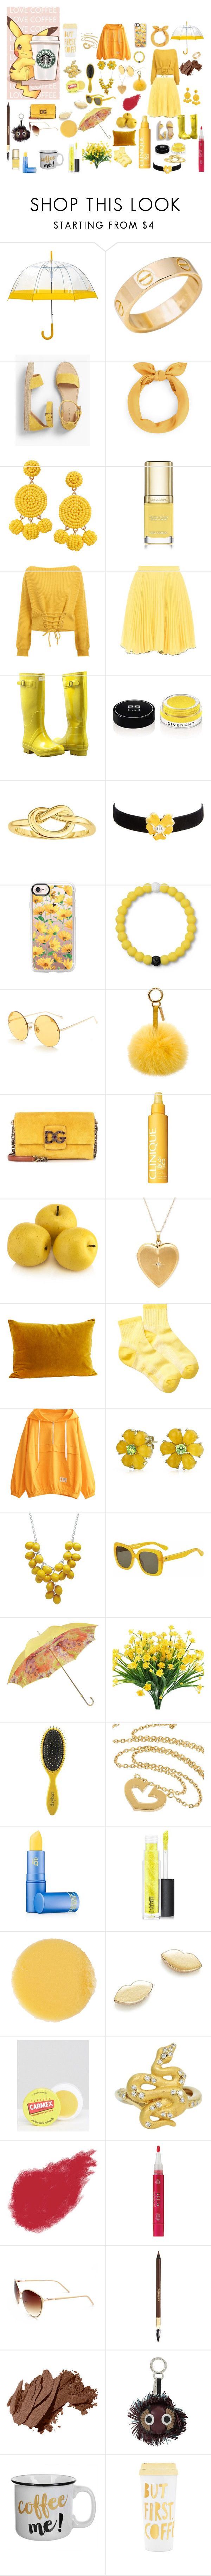 """""""POKEMON"""" by cutefangirl-2003 ❤ liked on Polyvore featuring beauty, Cartier, Talbots, Humble Chic, Dolce&Gabbana, Boutique Moschino, Forever Young, Givenchy, Kenneth Jay Lane and Casetify"""